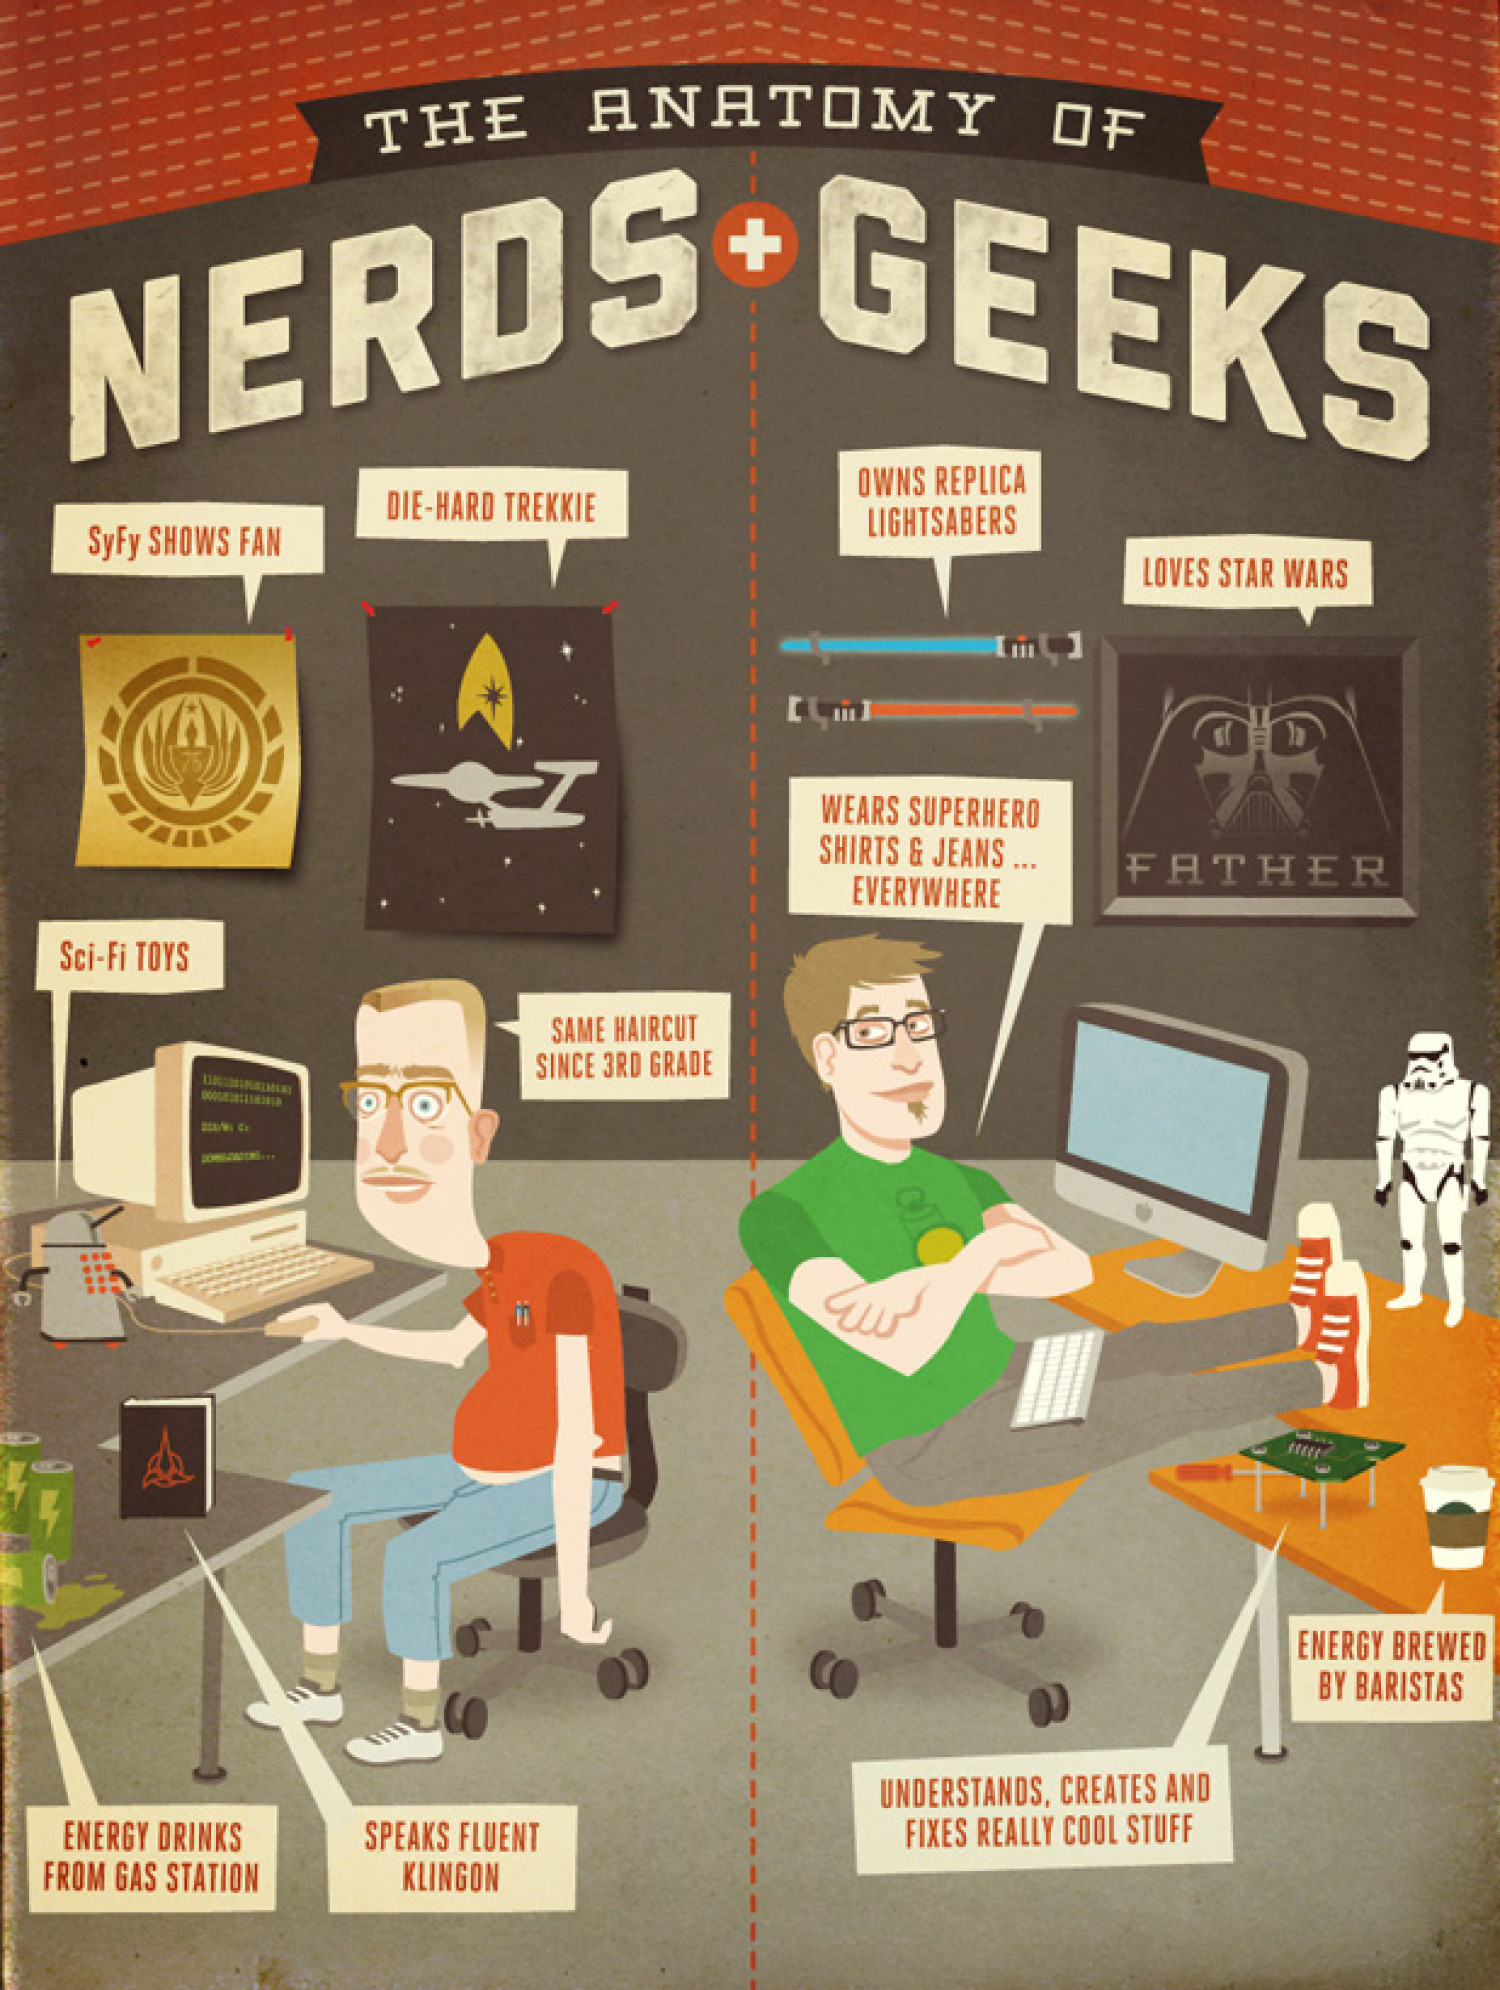 The Anatomy of Nerds & Geeks Infographic